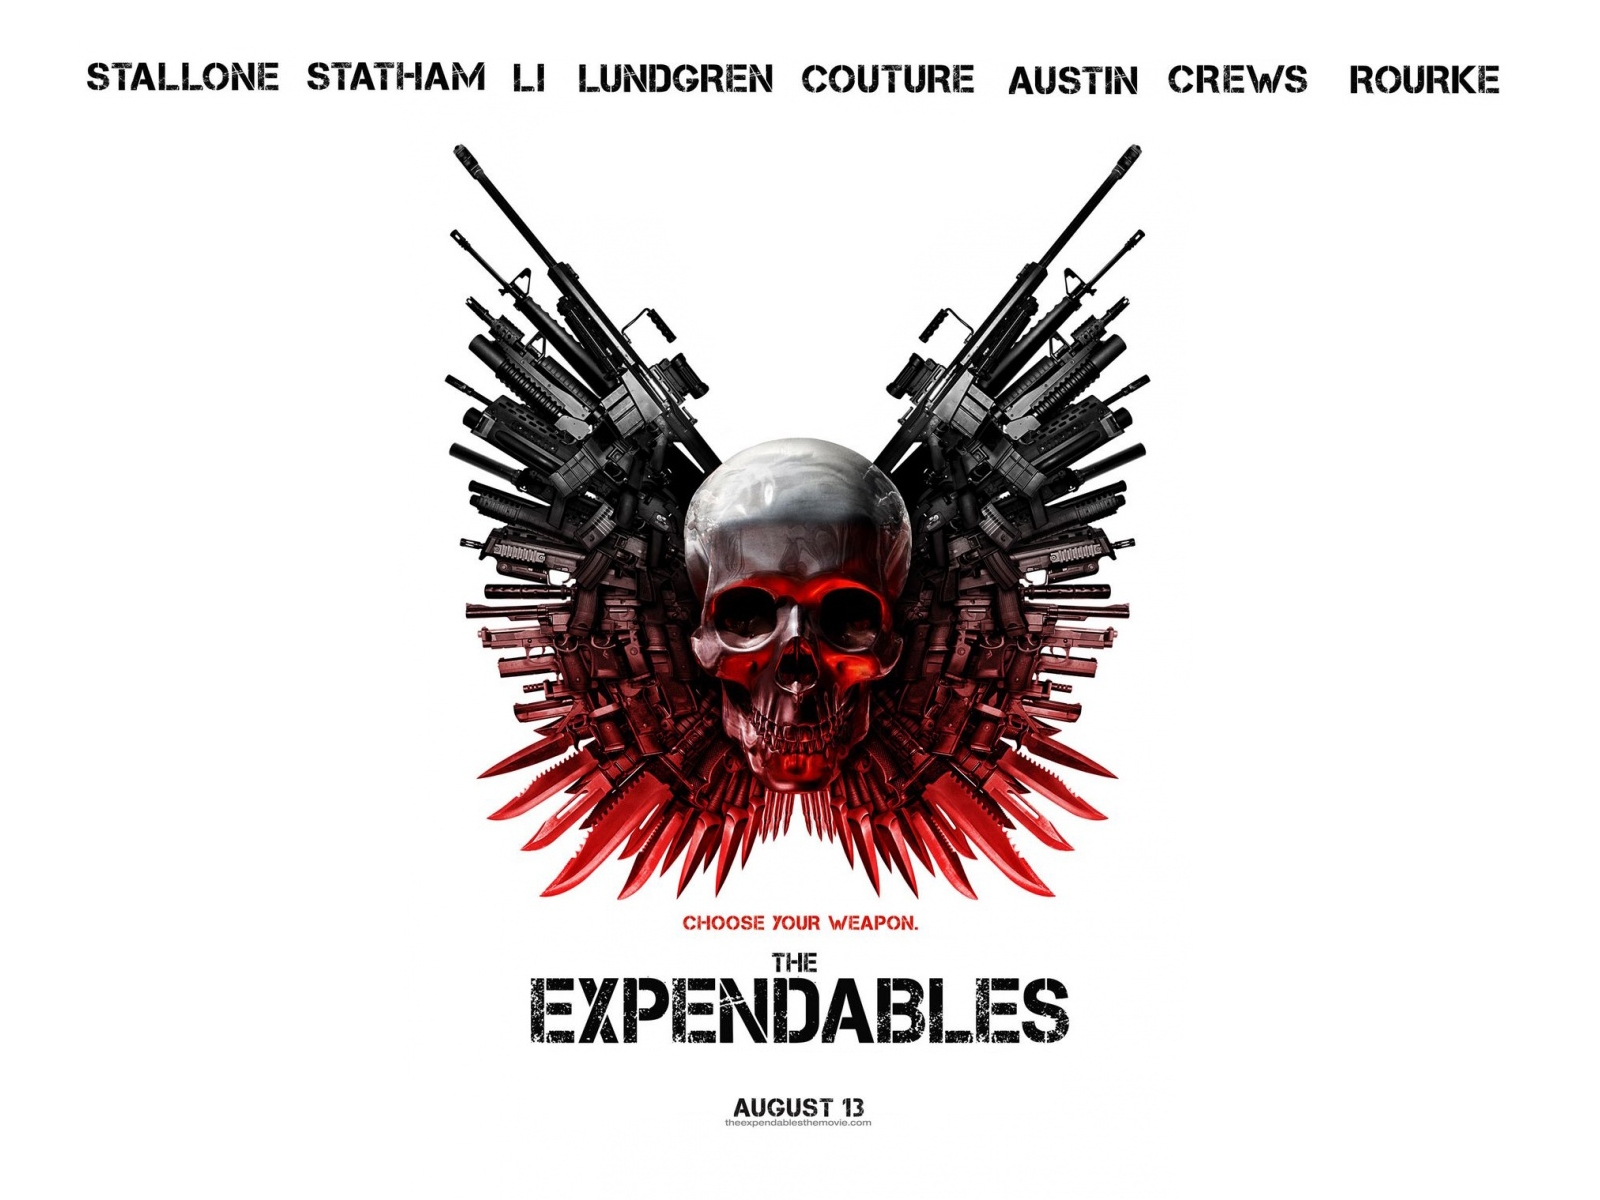 Expendables Skull Wallpaper Skull The Expendables